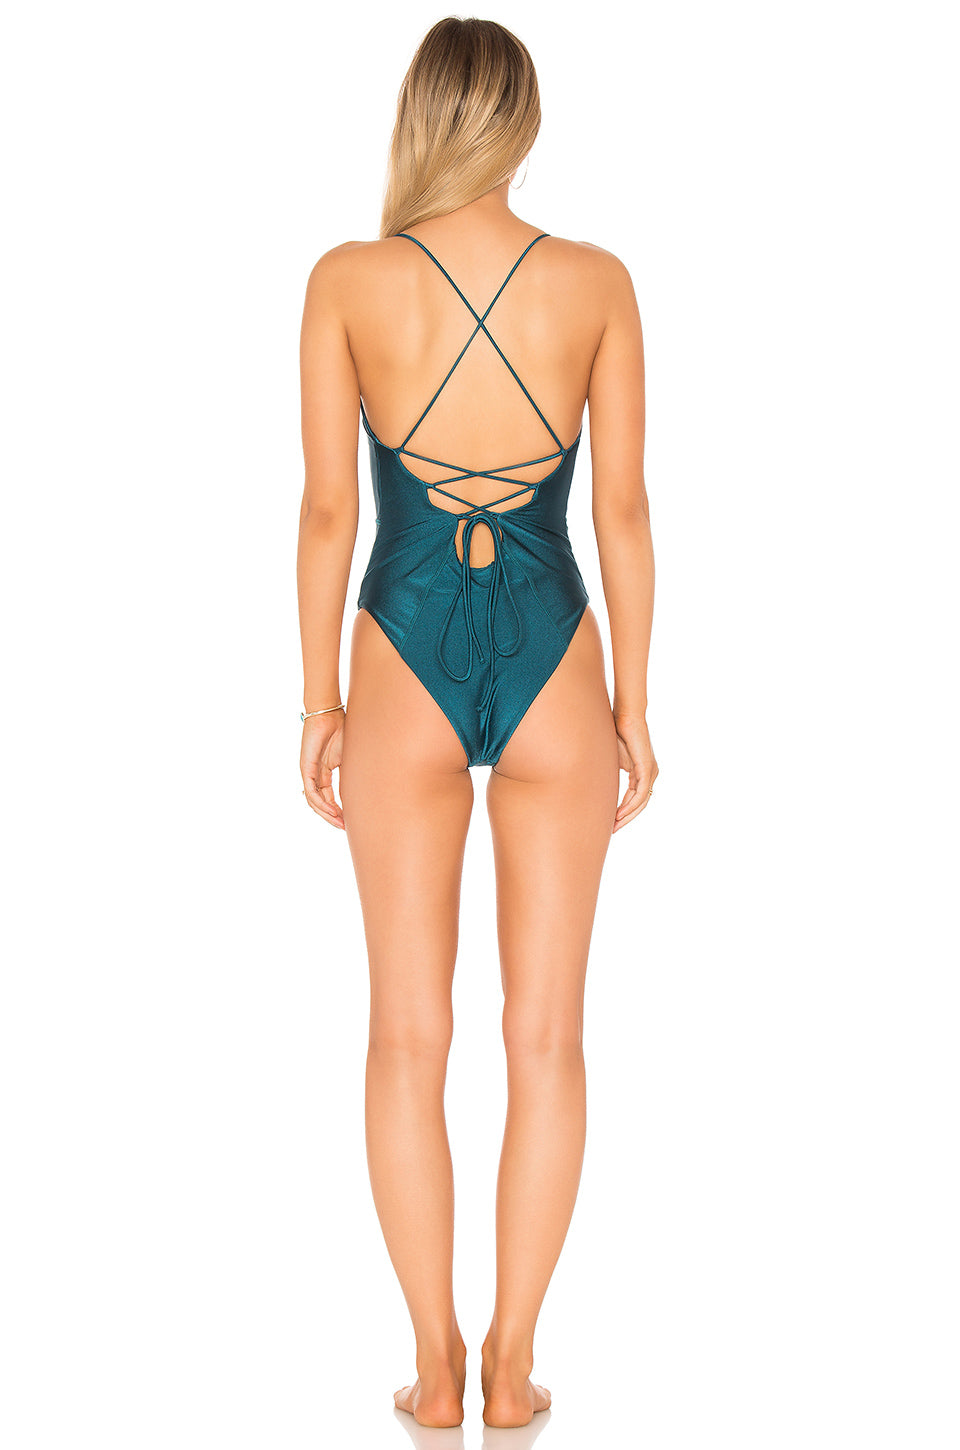 Murni One Piece Swimsuit